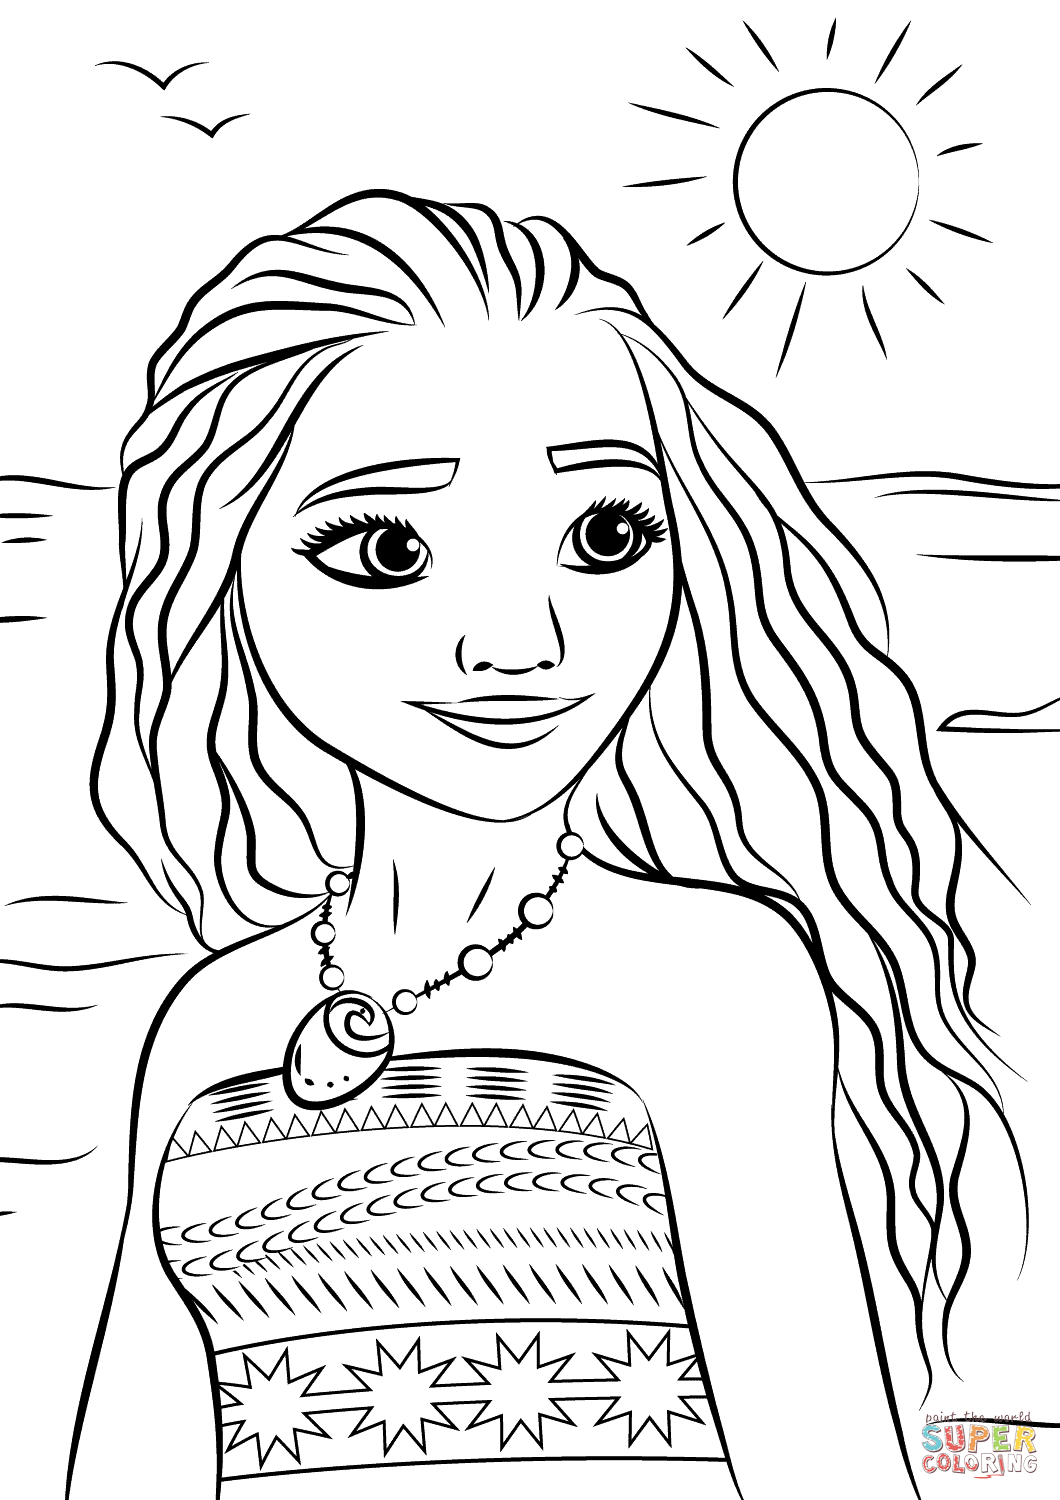 Molana Coloring Pages